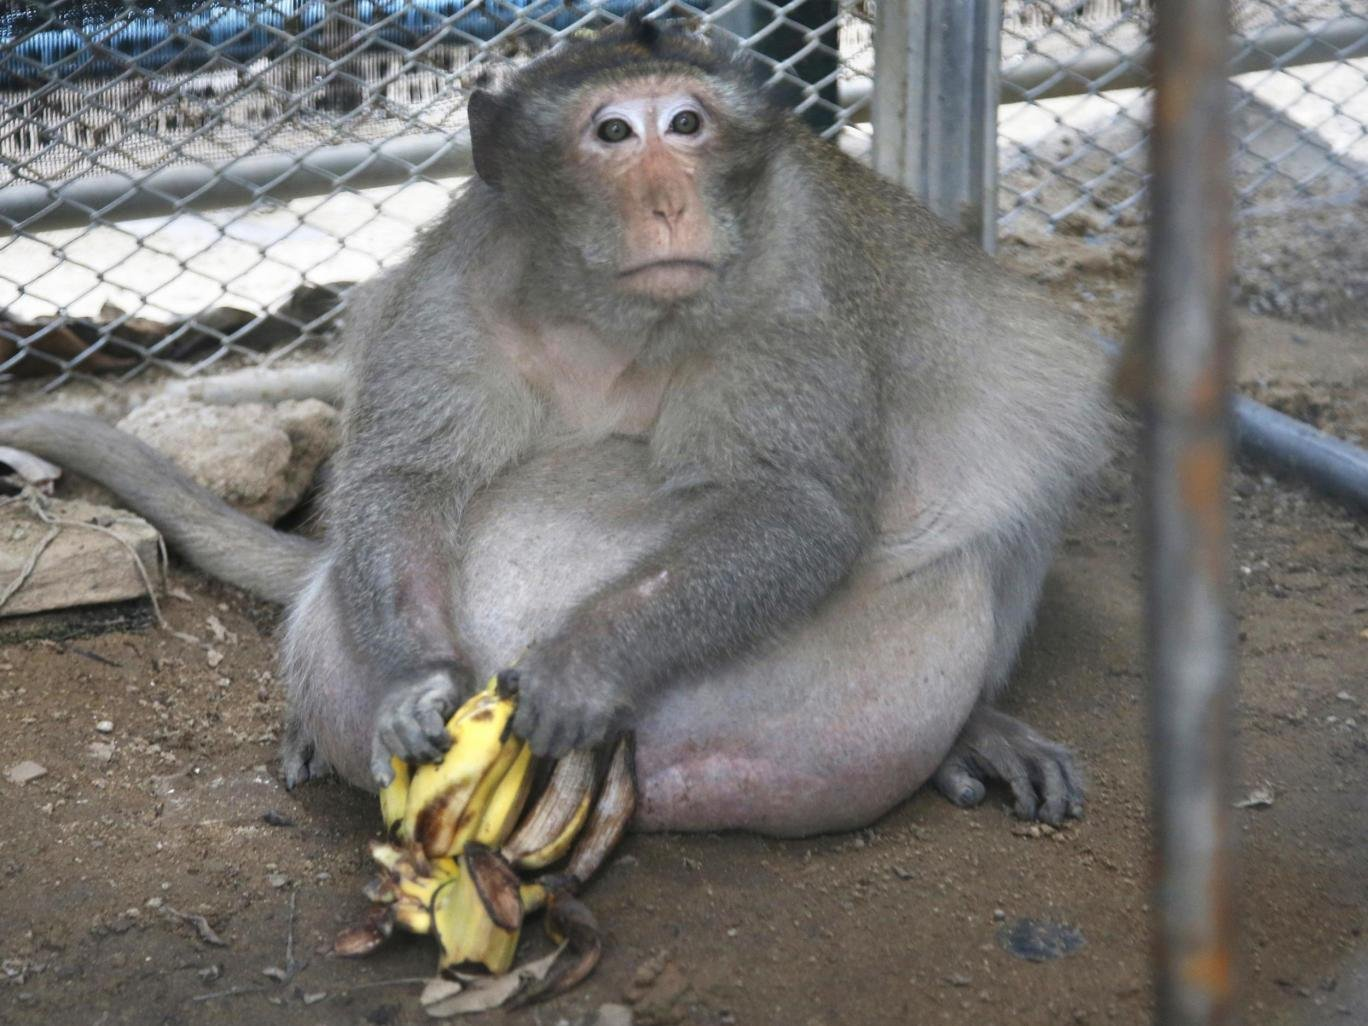 Caption: Uncle Fat, the overweight macaque. Photo courtesy Sakchai Lalit/AP